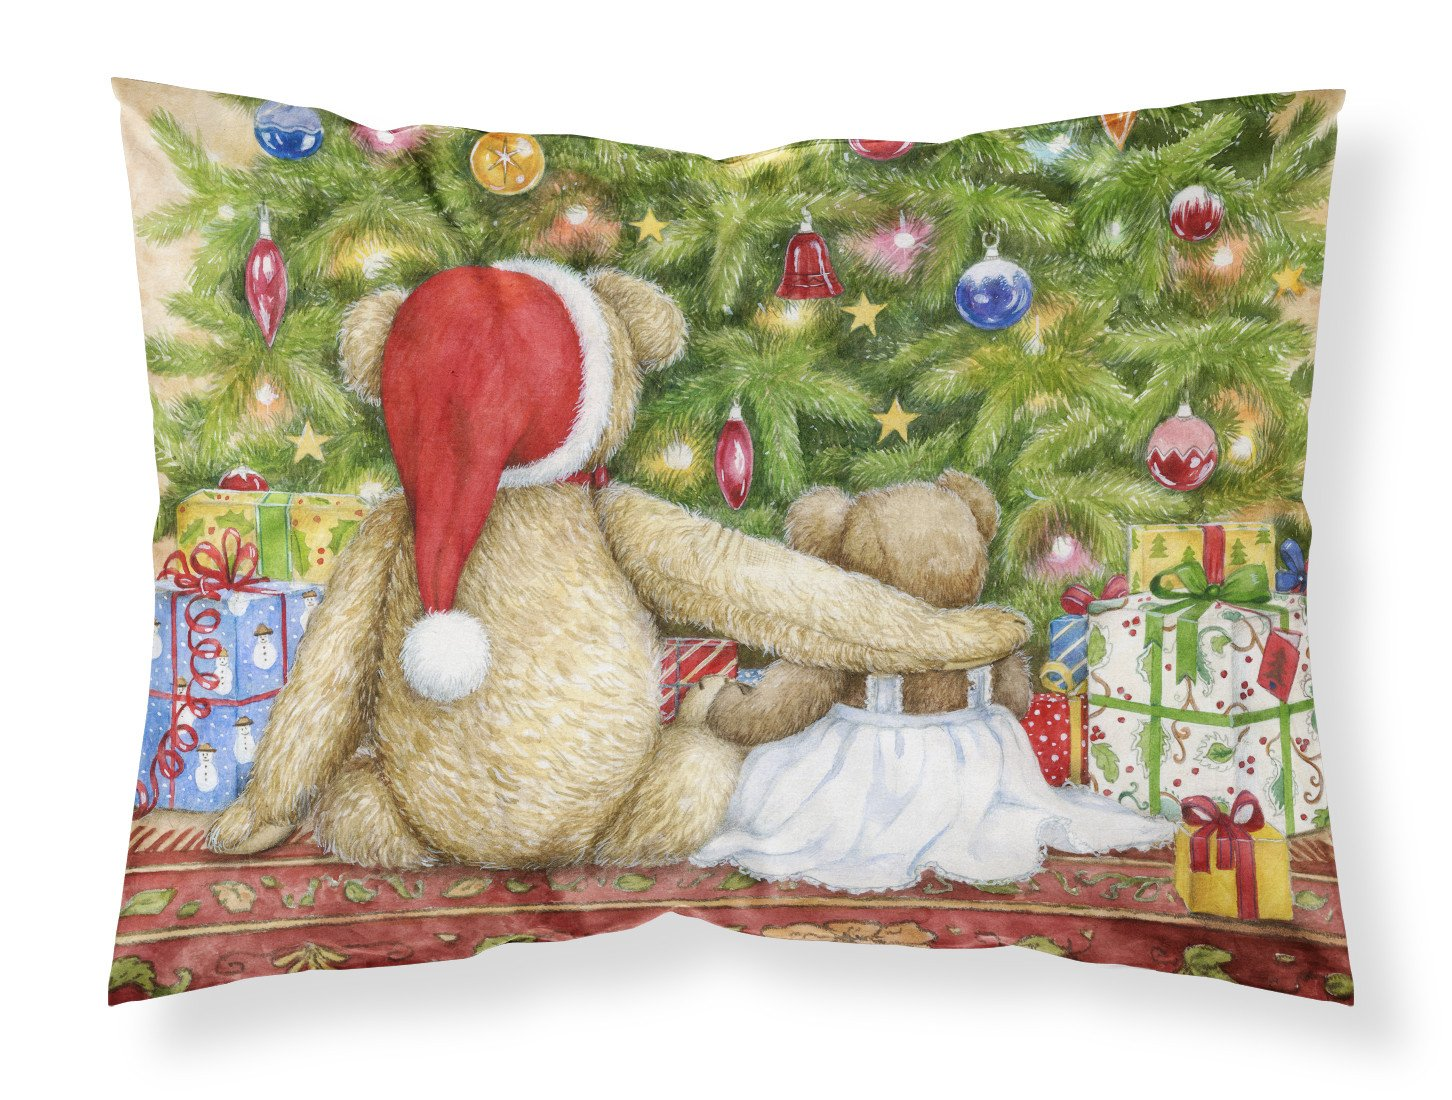 Buy this Christmas Teddy Bears with Tree Fabric Standard Pillowcase CDCO0415PILLOWCASE